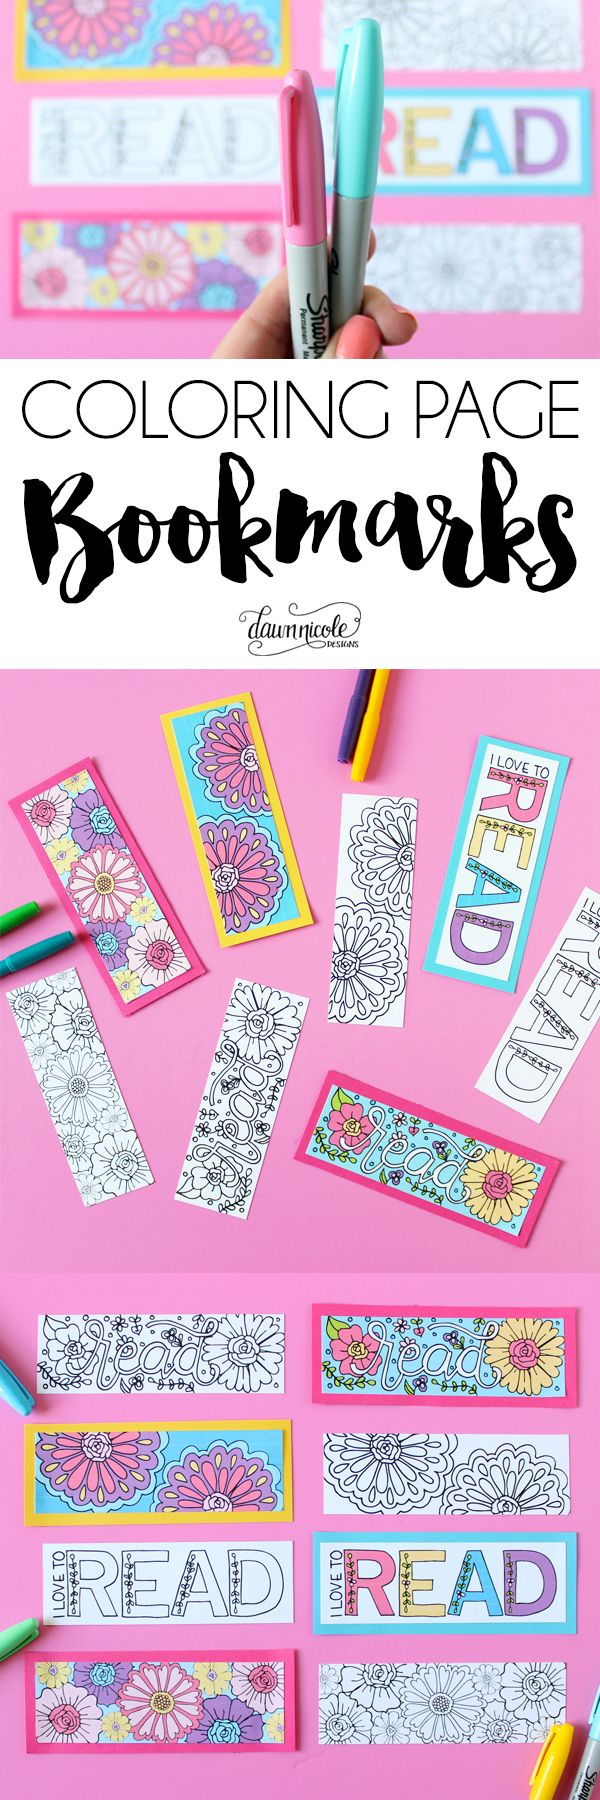 Mobile shimmer and shine coloring games coloring pages ausmalbilder - Free Summer Coloring Page Bookmarks Color Your Own Or Grab The Already Colored